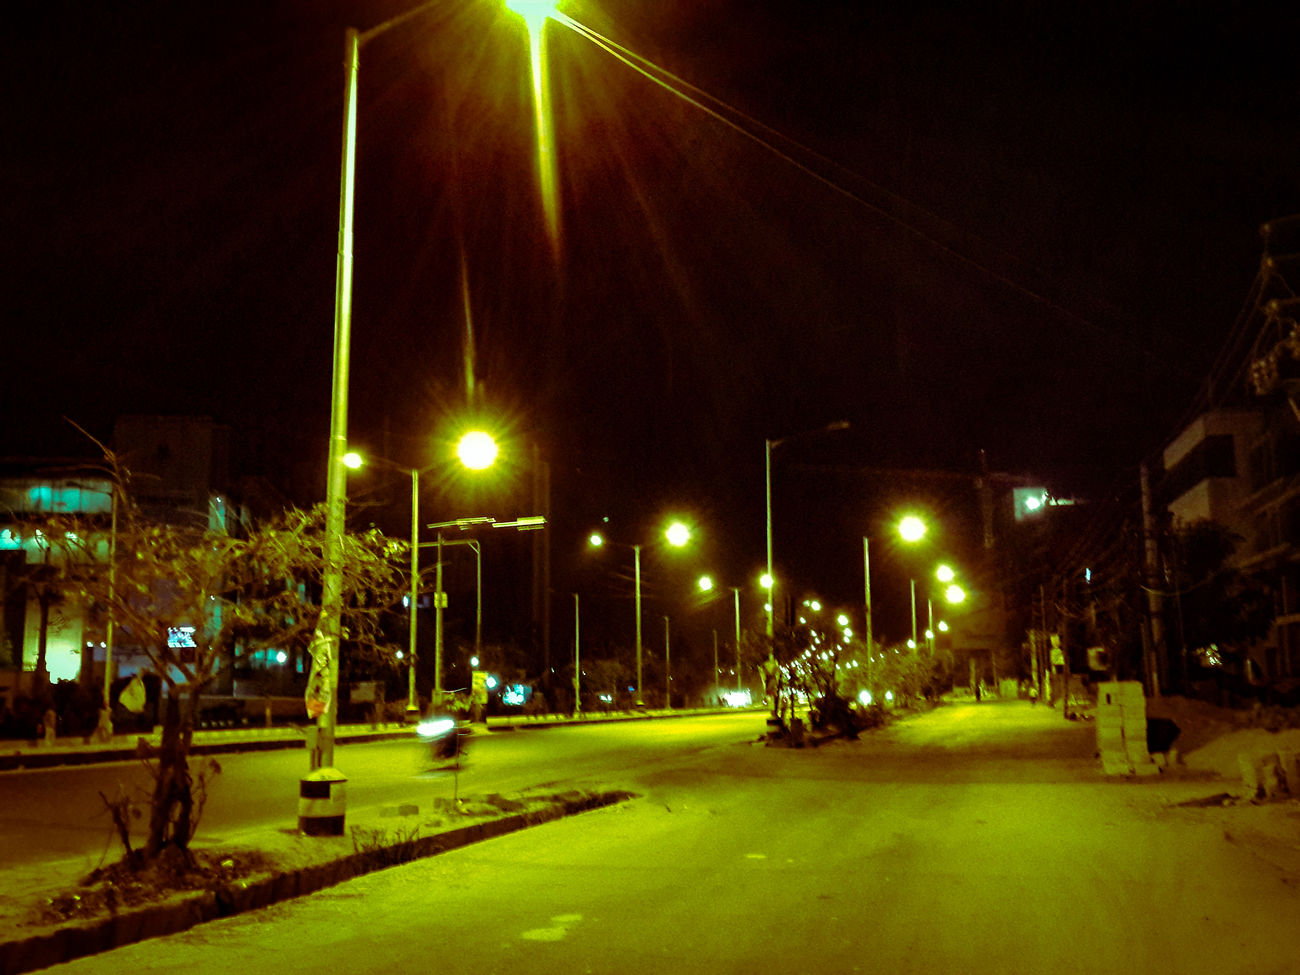 Nocturnal;) Night Illuminated Outdoors No People Emptyplaces Empty Road Solotraveler Volkswagen Check This Out! Hello World Note3Camera Travel The Way Forward Travel Destinations Vacations Nightdriving NightDiaries Night Lights Nightphotography Nightpost Transportation Calm